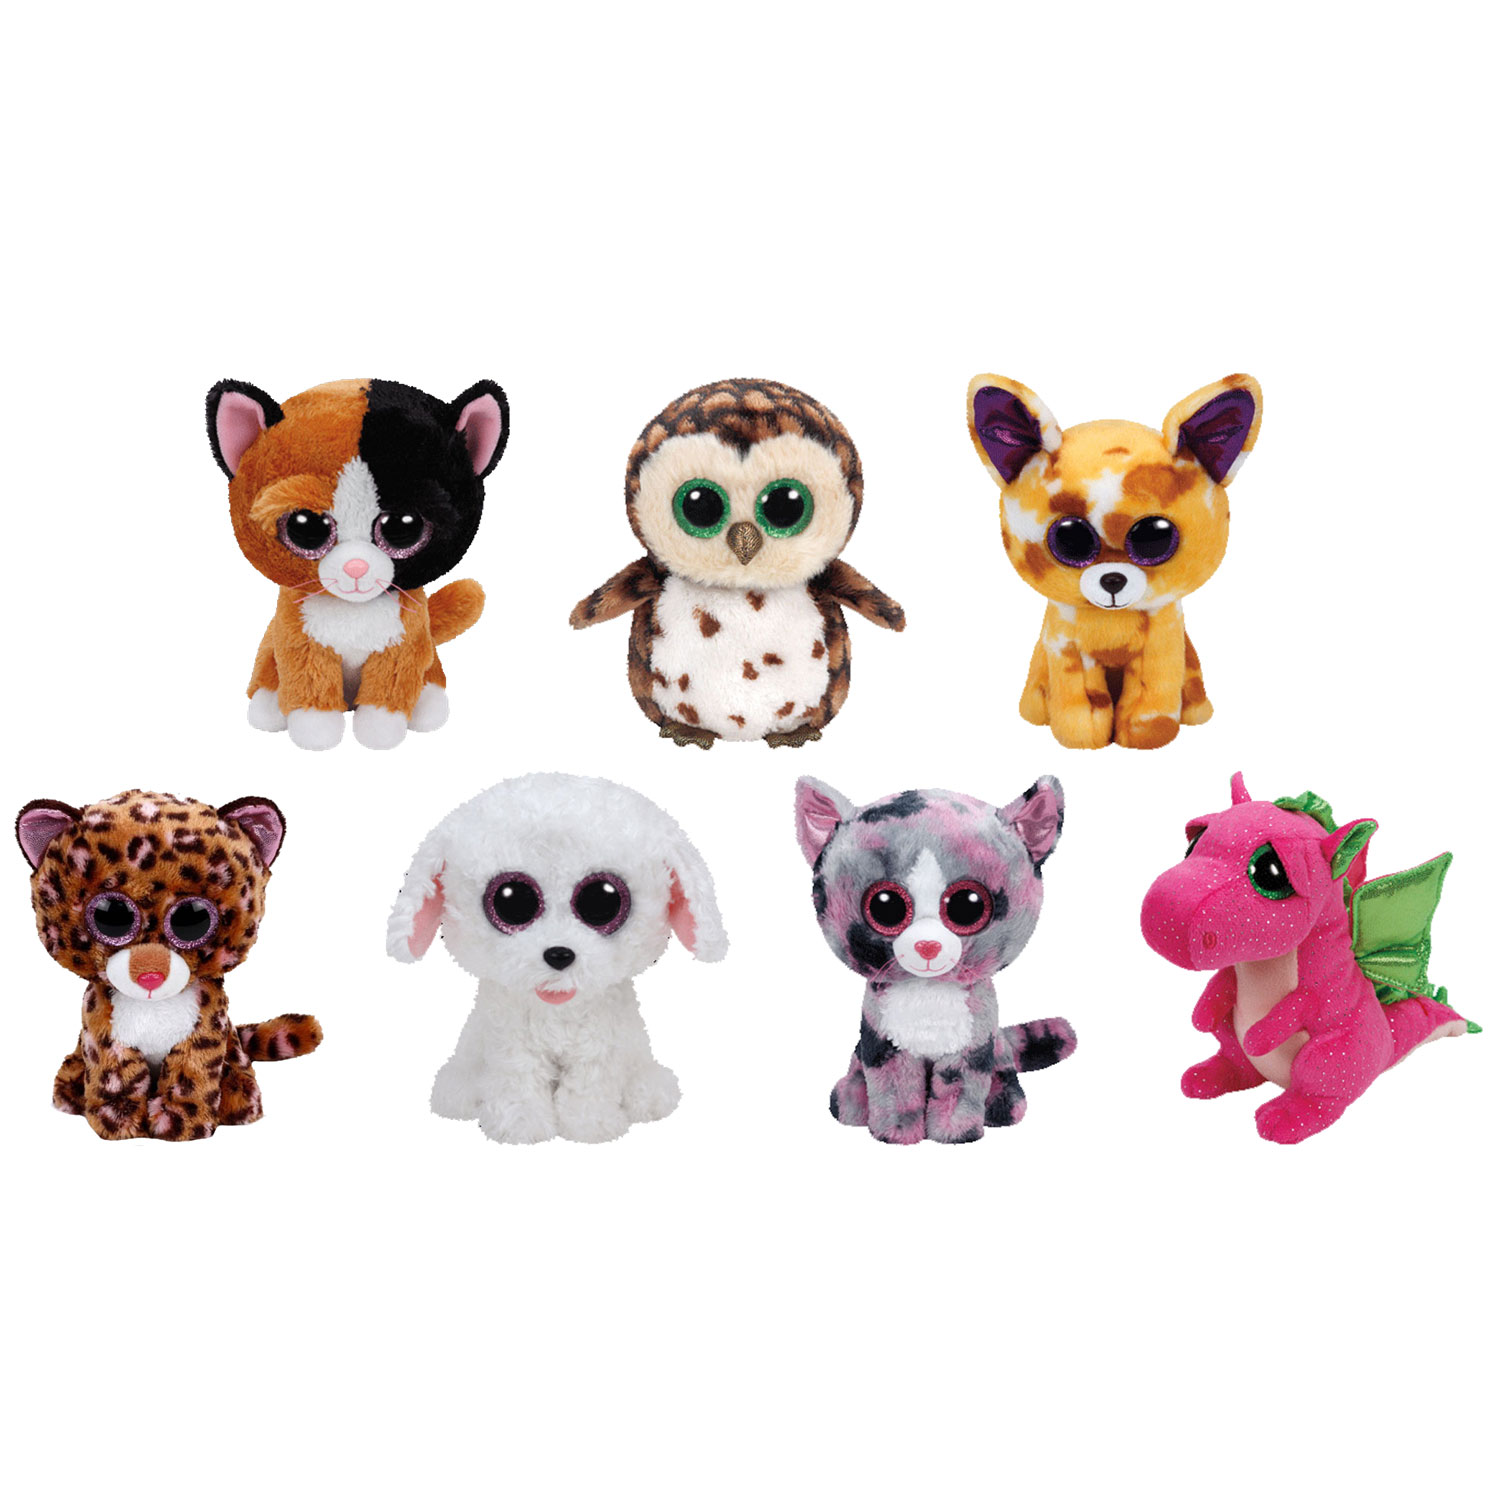 2ad134951d8 TY Beanie Boos - SET of 7 Spring 2016 Releases (Medium - 9 inch)